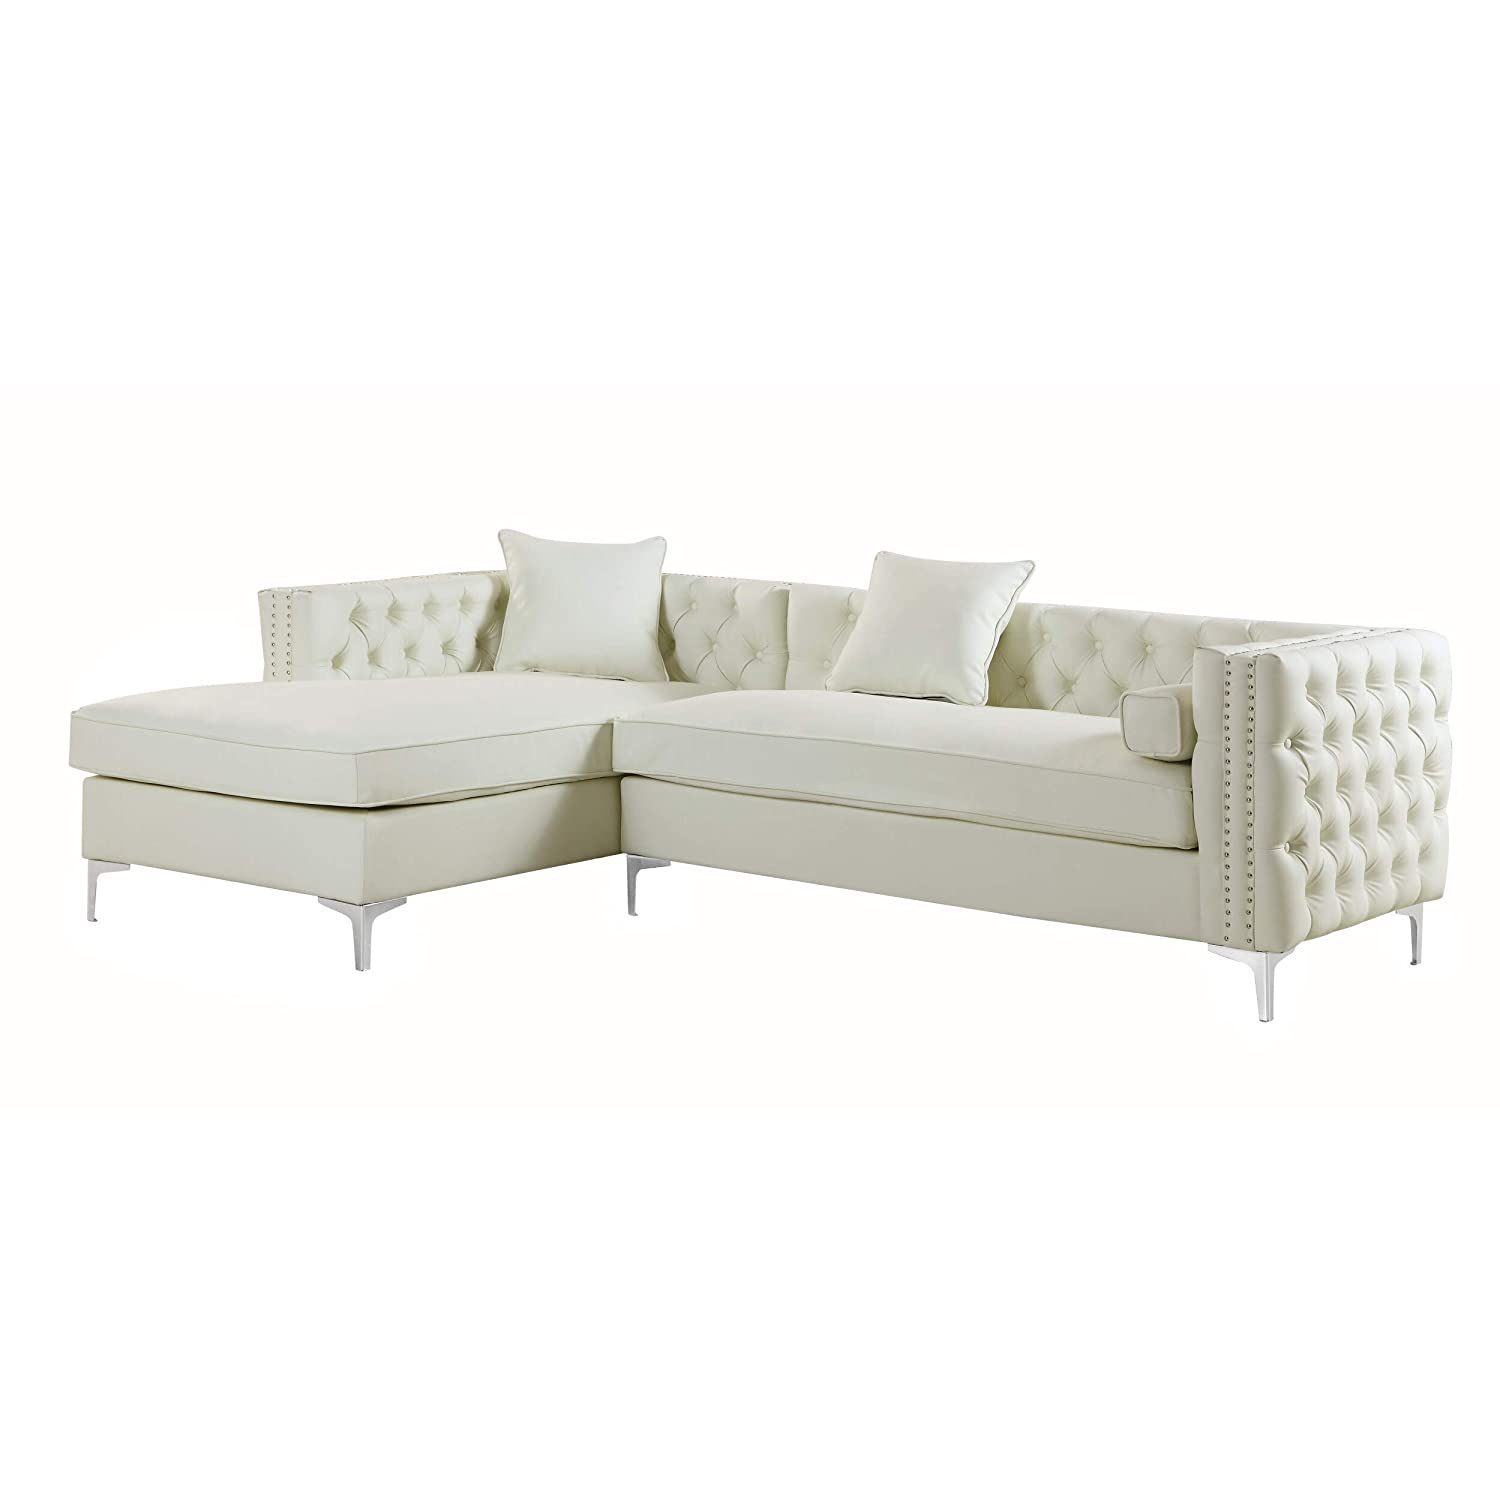 Amazon.com: Chic Home Monet Left Hand Facing Sectional Sofa ...